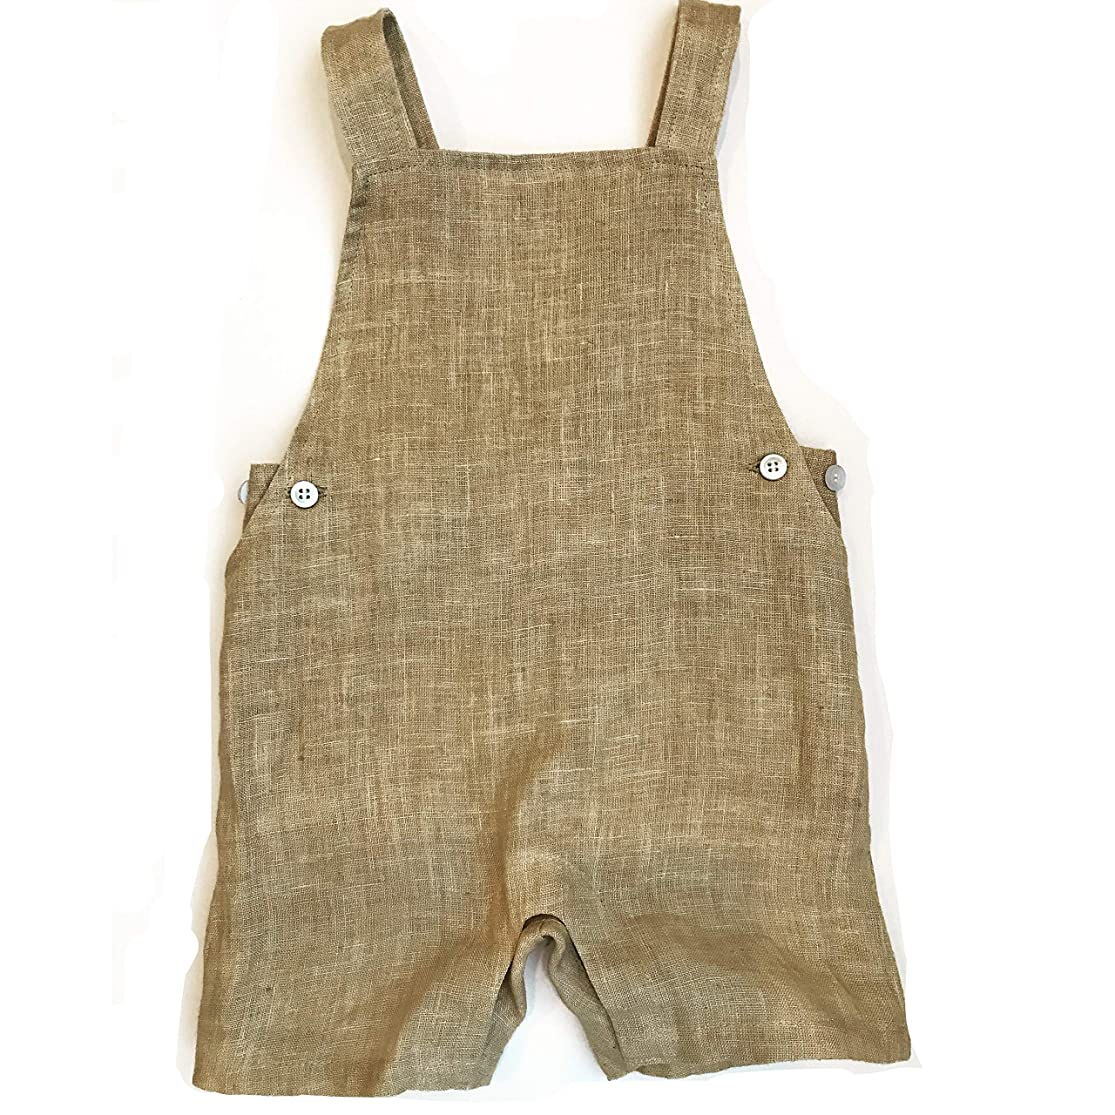 Linen Baby Clothes Jumper, Romper, Overalls, Jumpsuit for Infants and Toddlers Made from eco-Friendly, Beautiful 100% Linen rkyqkzlm6